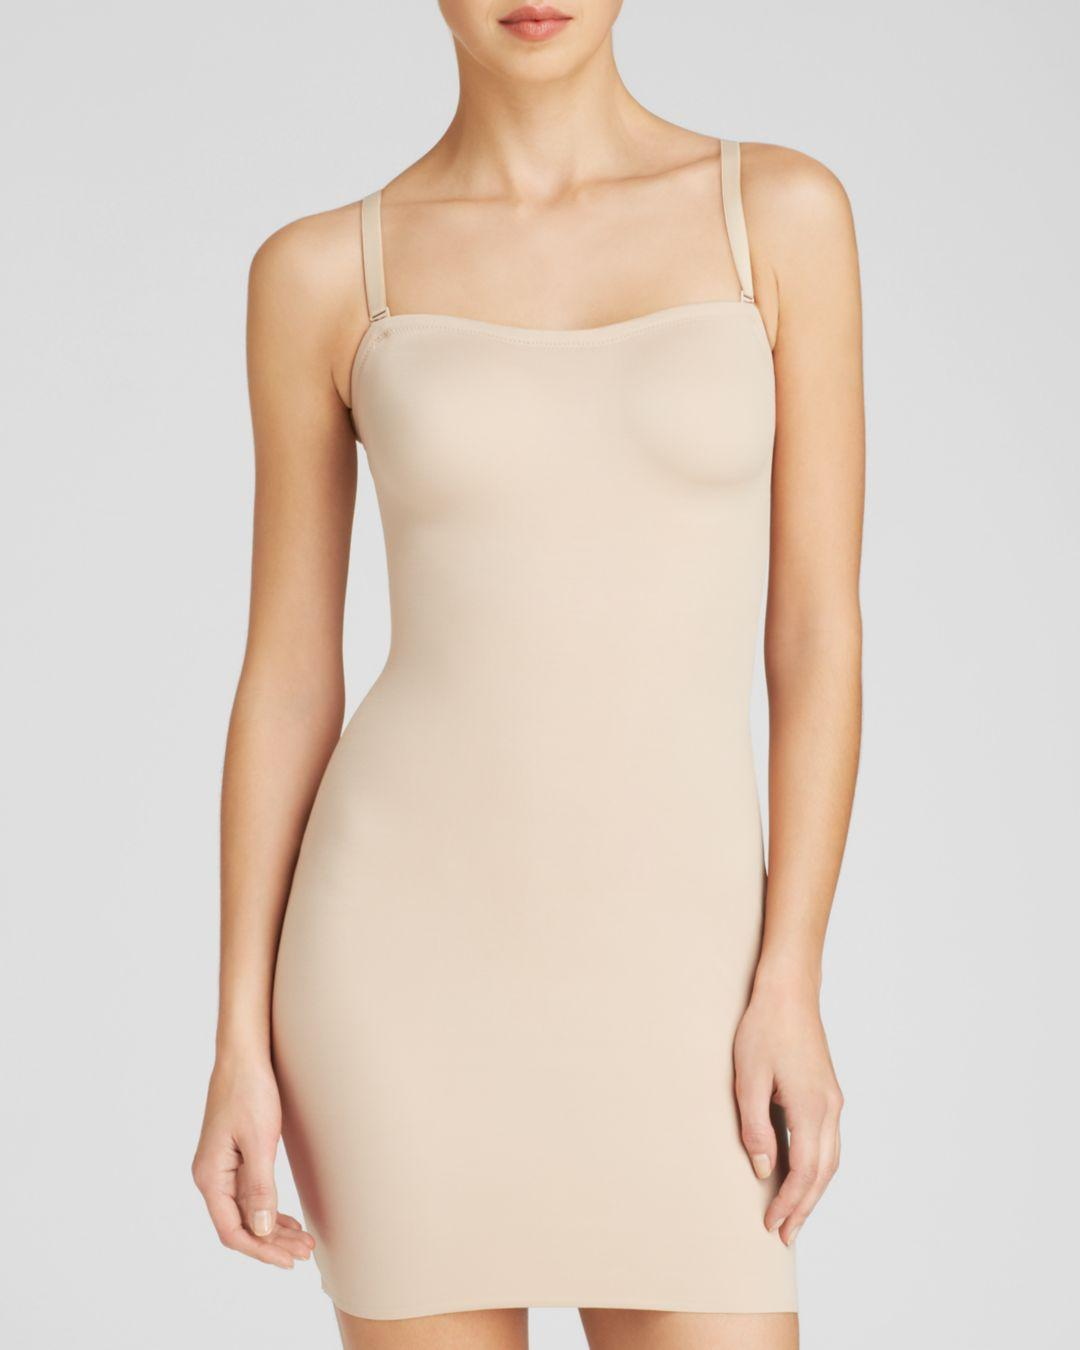 Tc Fine Intimates Synthetic Just Enough Strapless Slip in